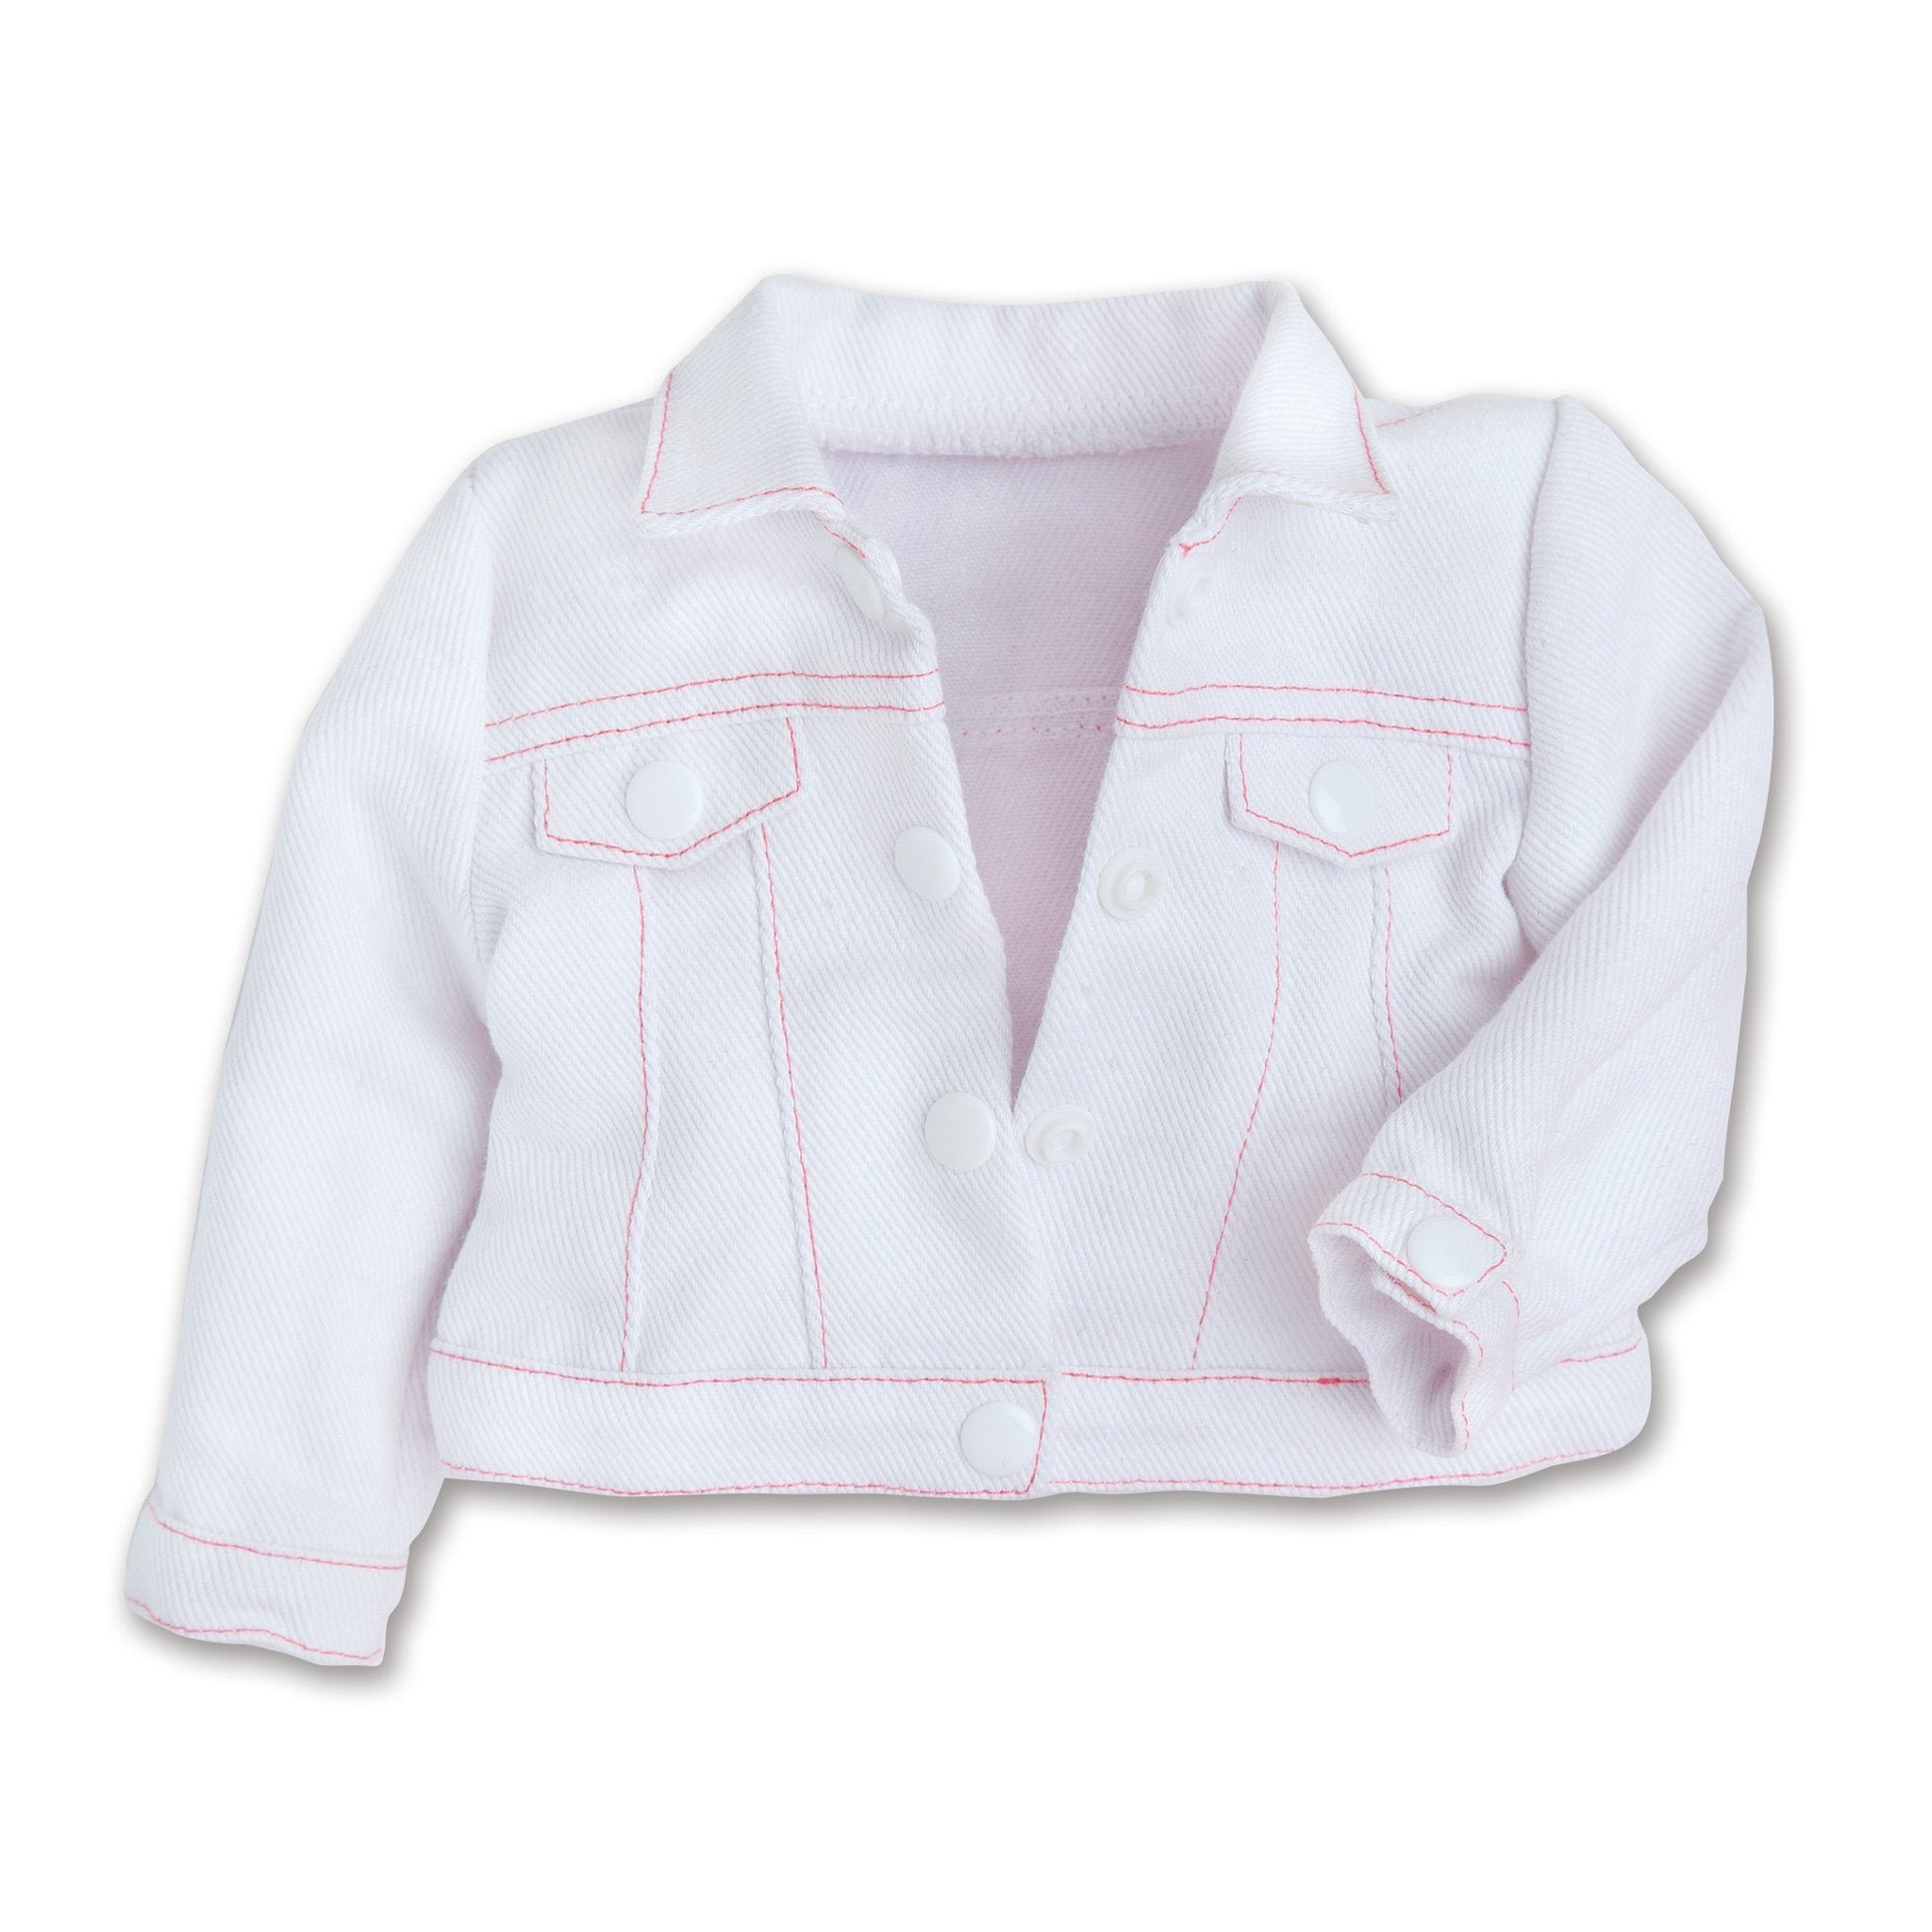 Tutu Cute white jean jacket with pink stitching fits all 18 inch dolls.